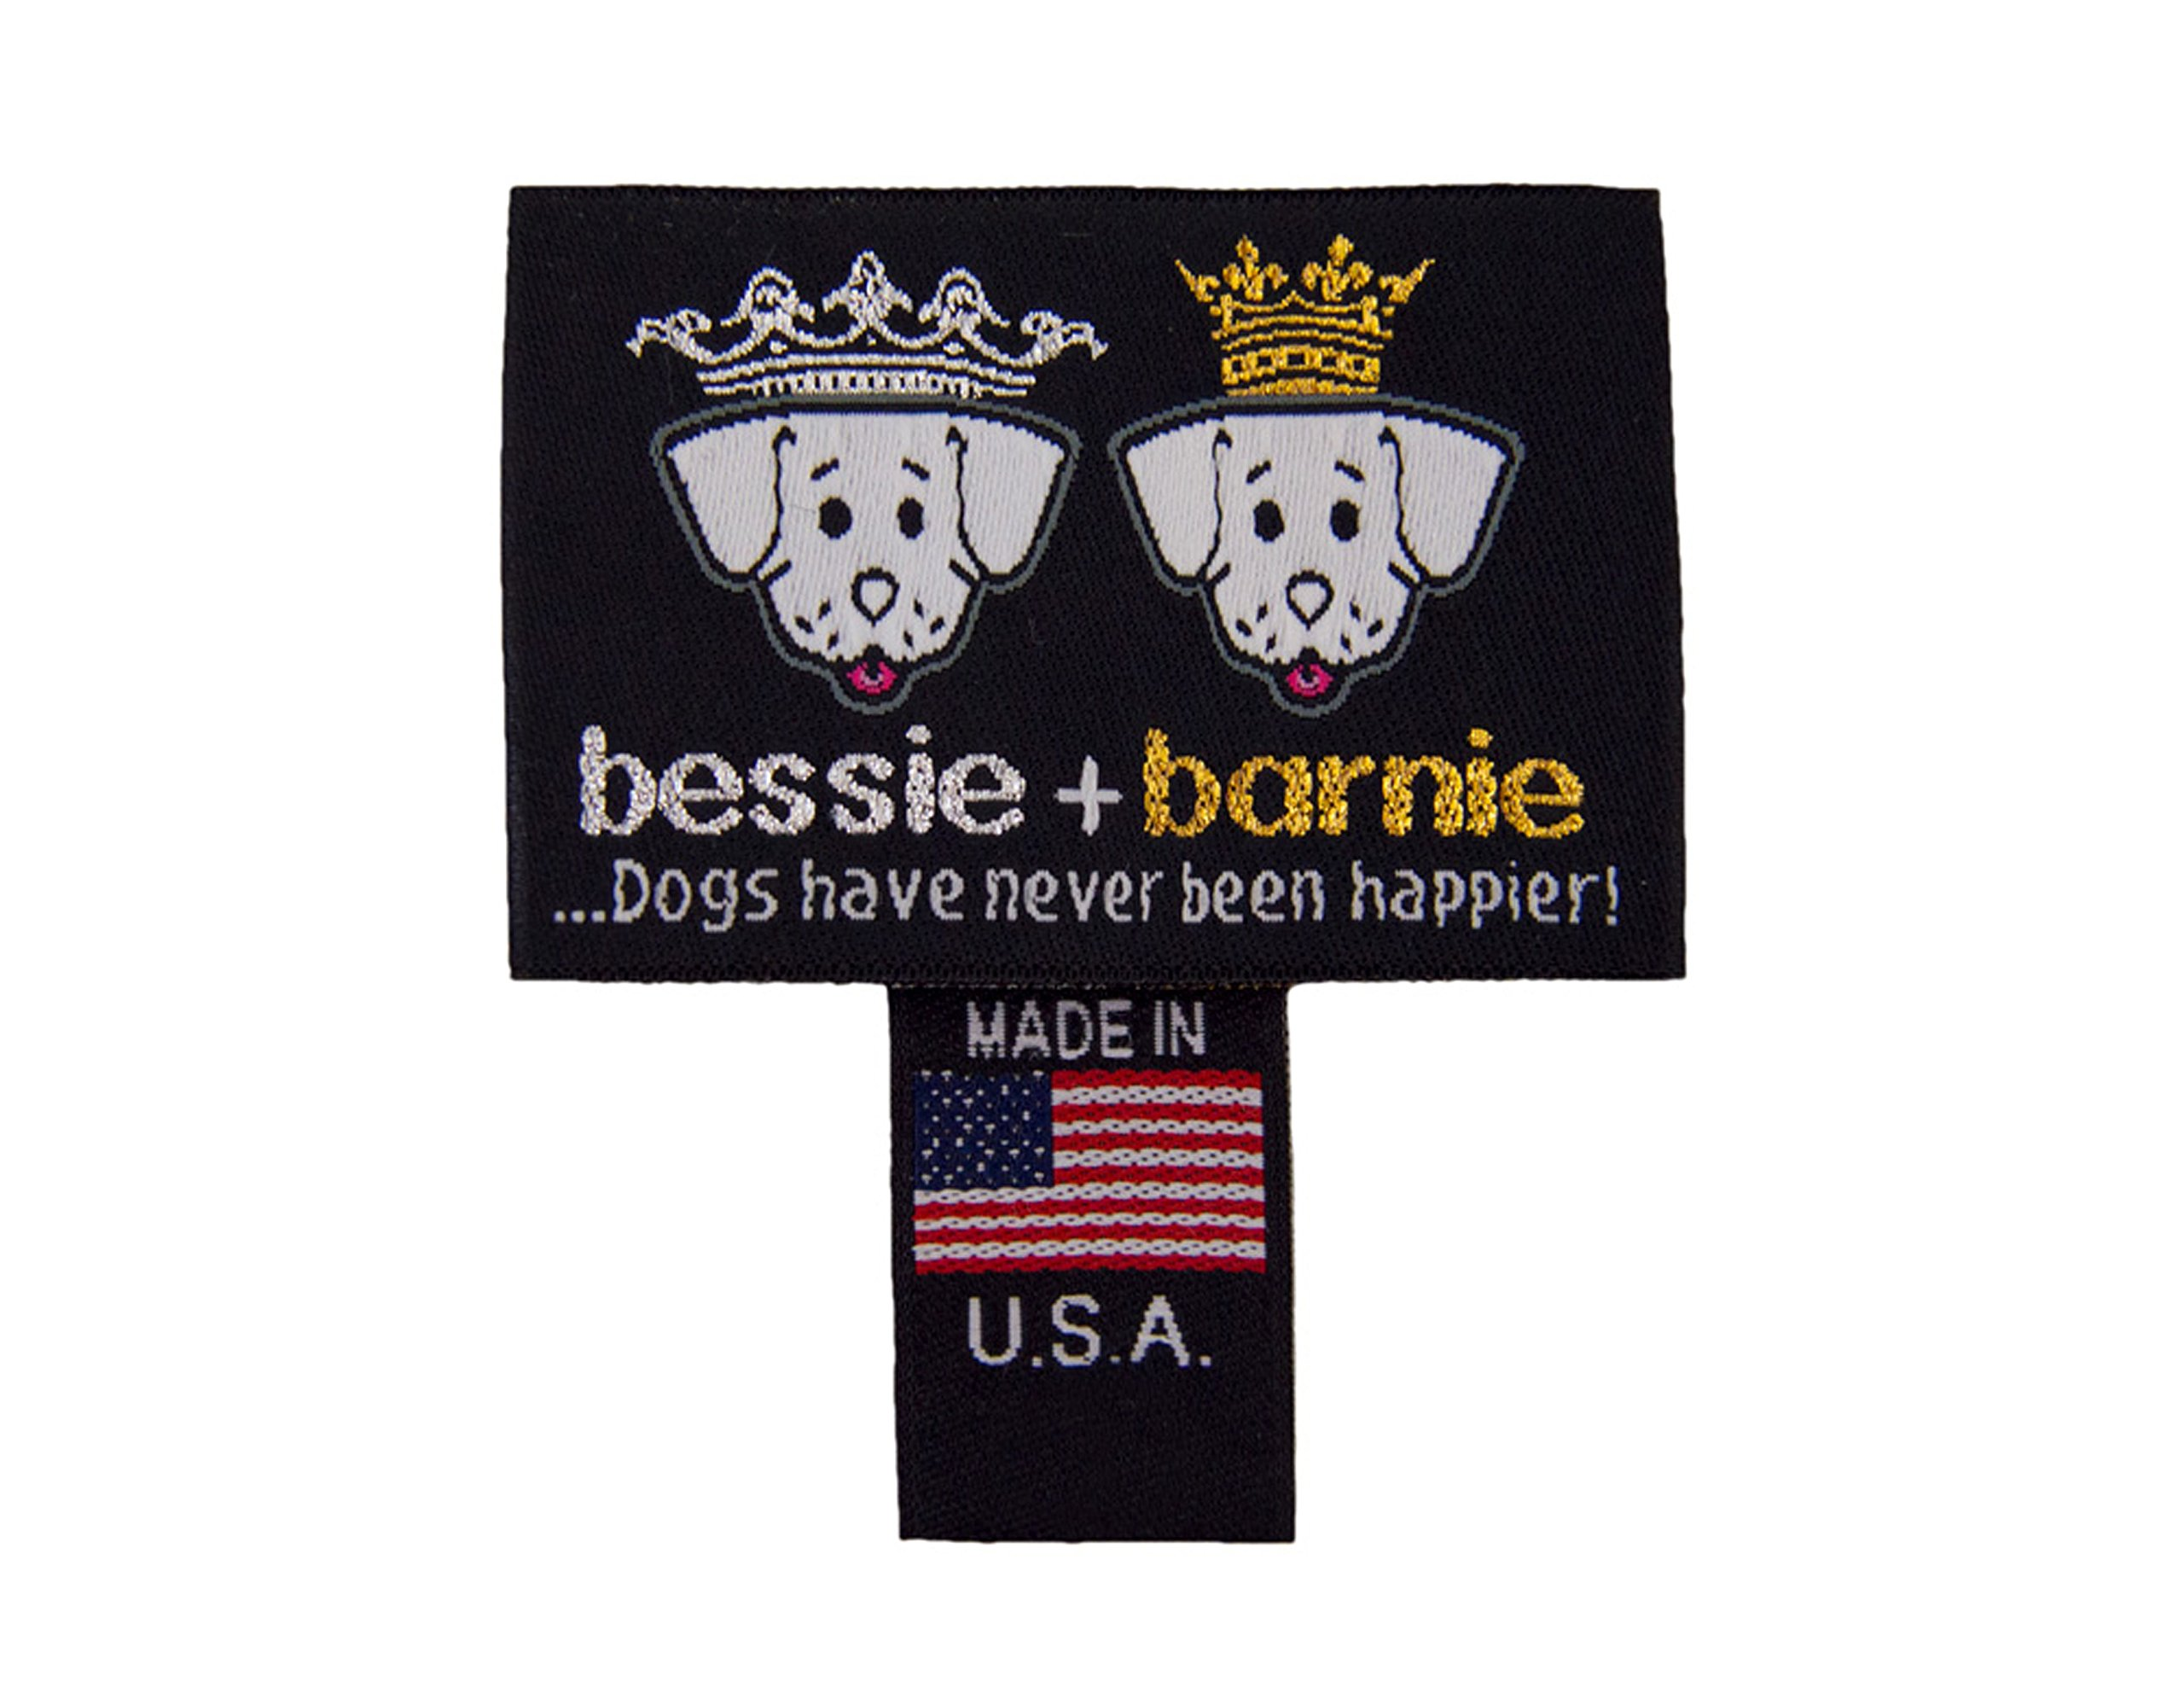 BESSIE AND BARNIE Ultra Plush Deluxe Comfort Pet Dog & Cat White Snuggle Bed (Multiple Sizes) - Machine Washable, Made in The USA, Reversible, Durable Soft Fabrics by BESSIE AND BARNIE (Image #4)